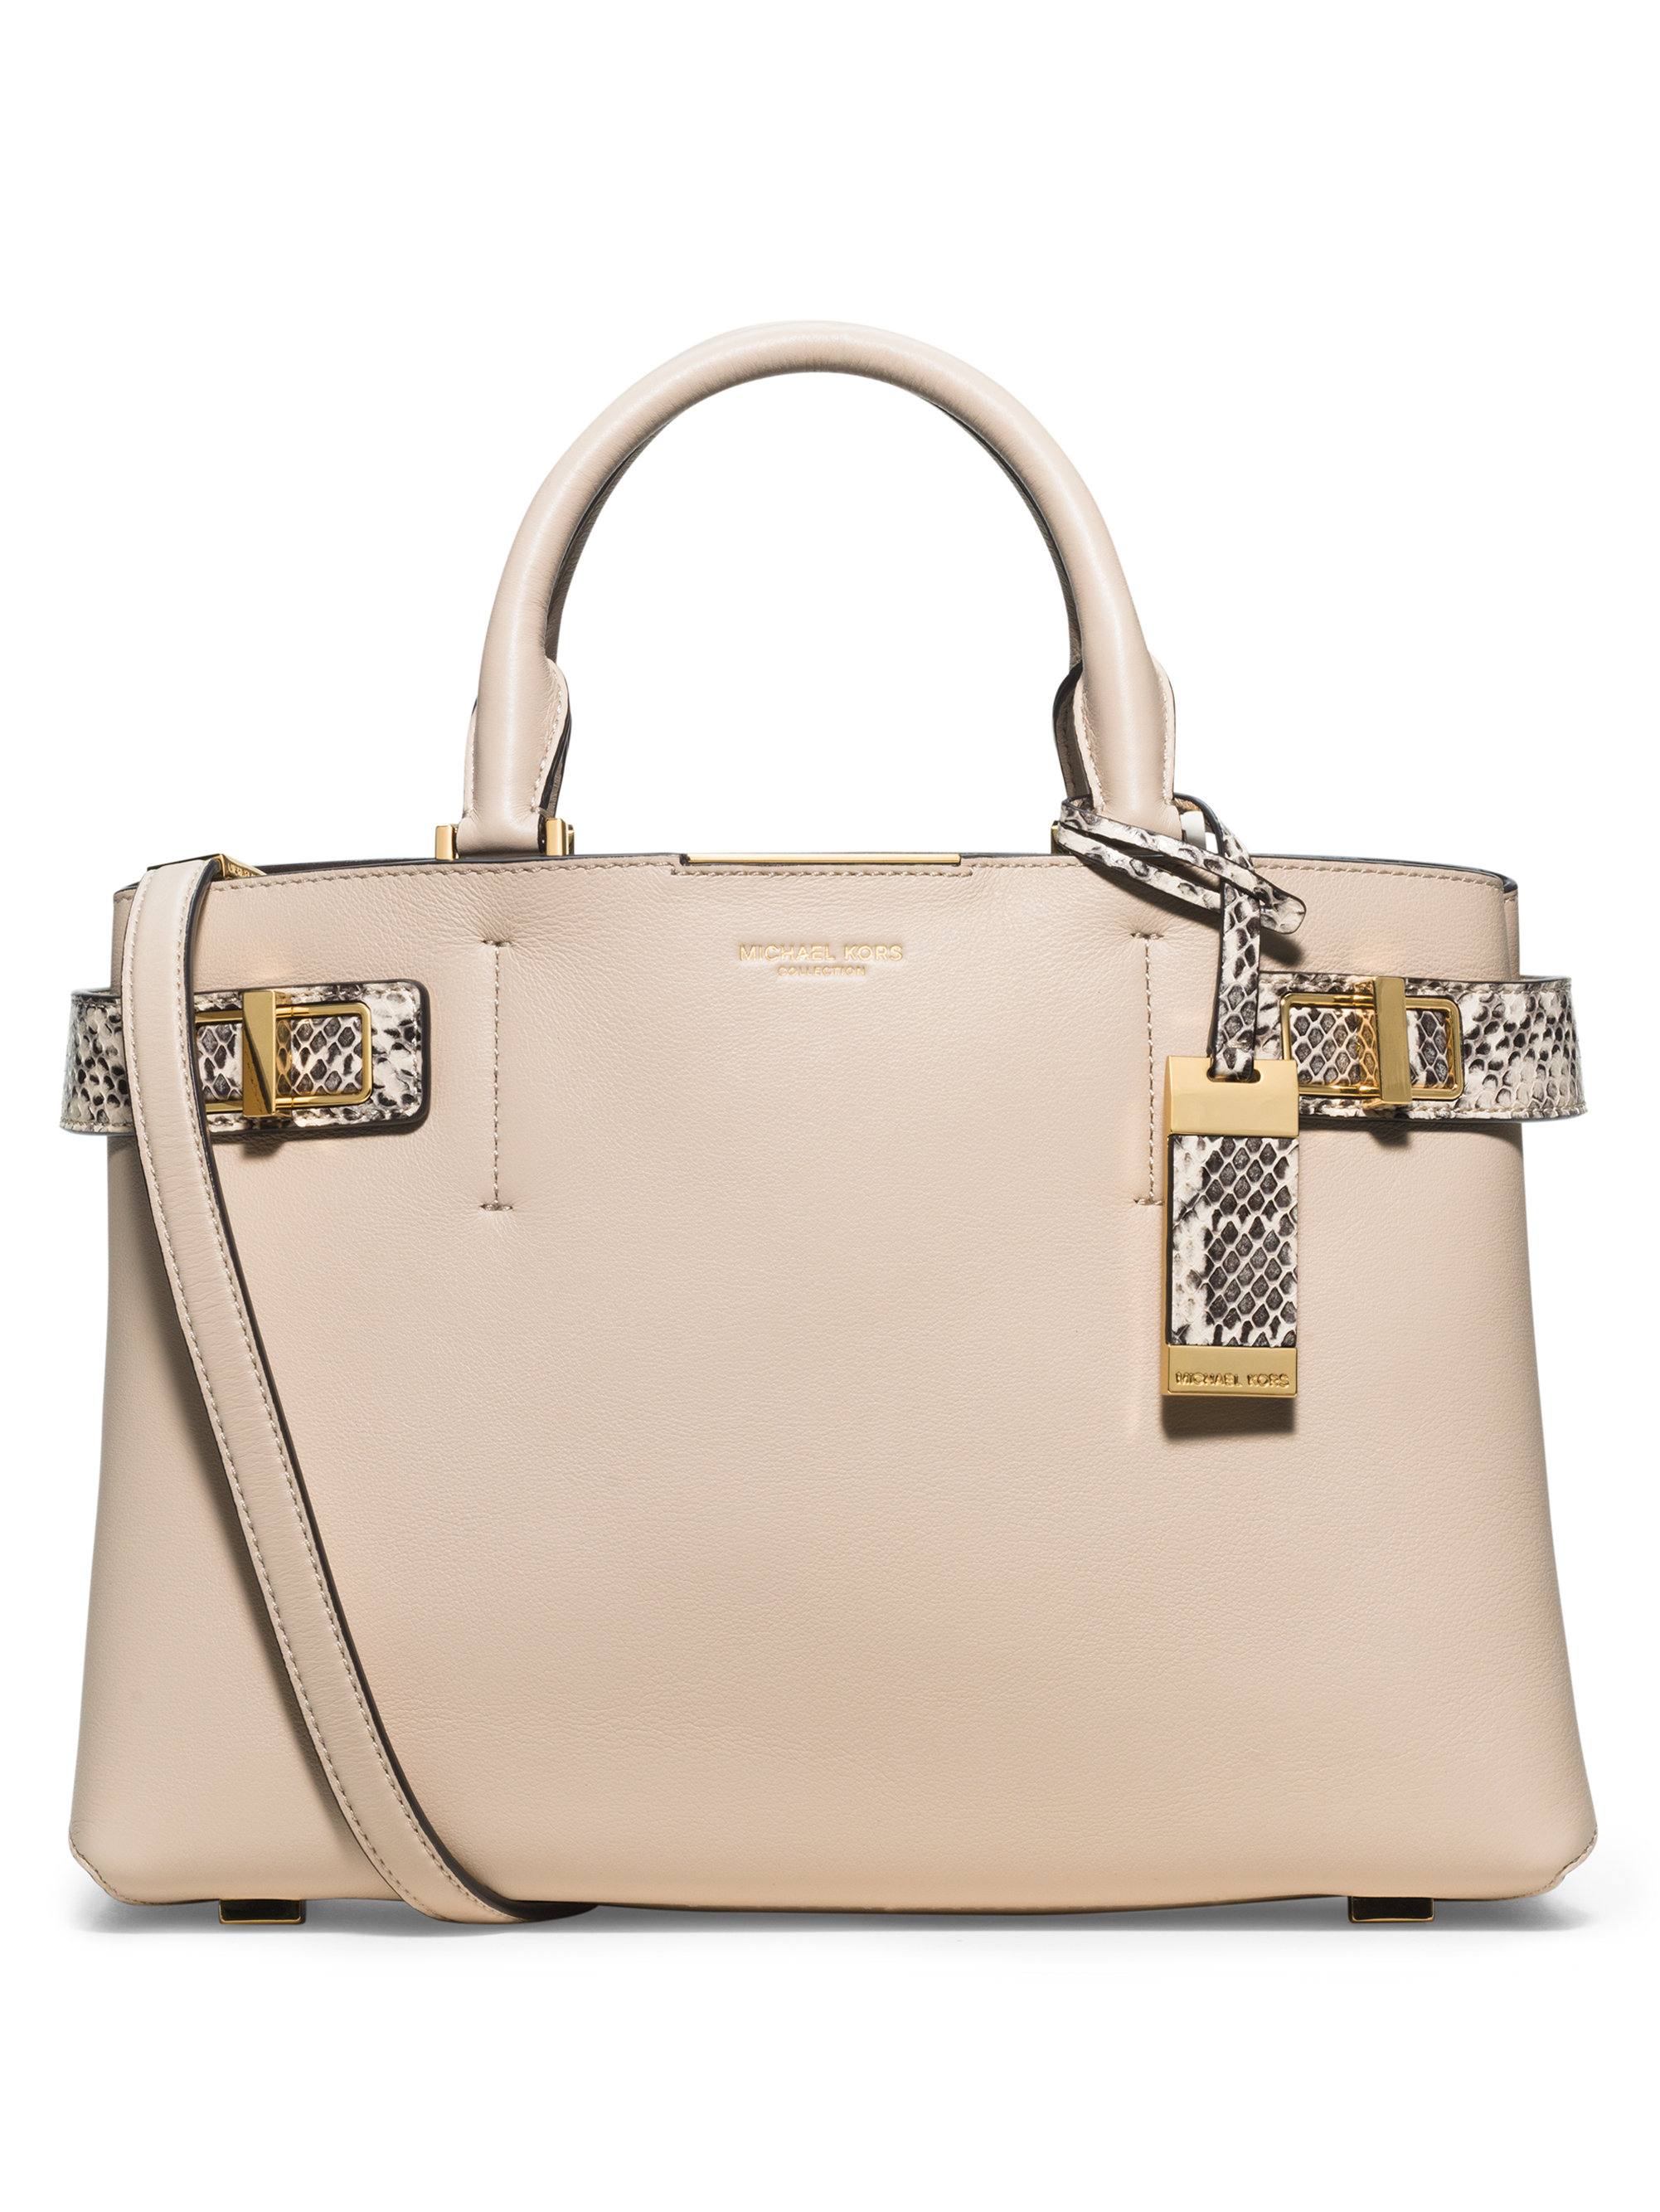 ... australia lyst michael kors bette medium leather snakeskin satchel in  white 9f608 1d1e3 e2c22d81bc0e3